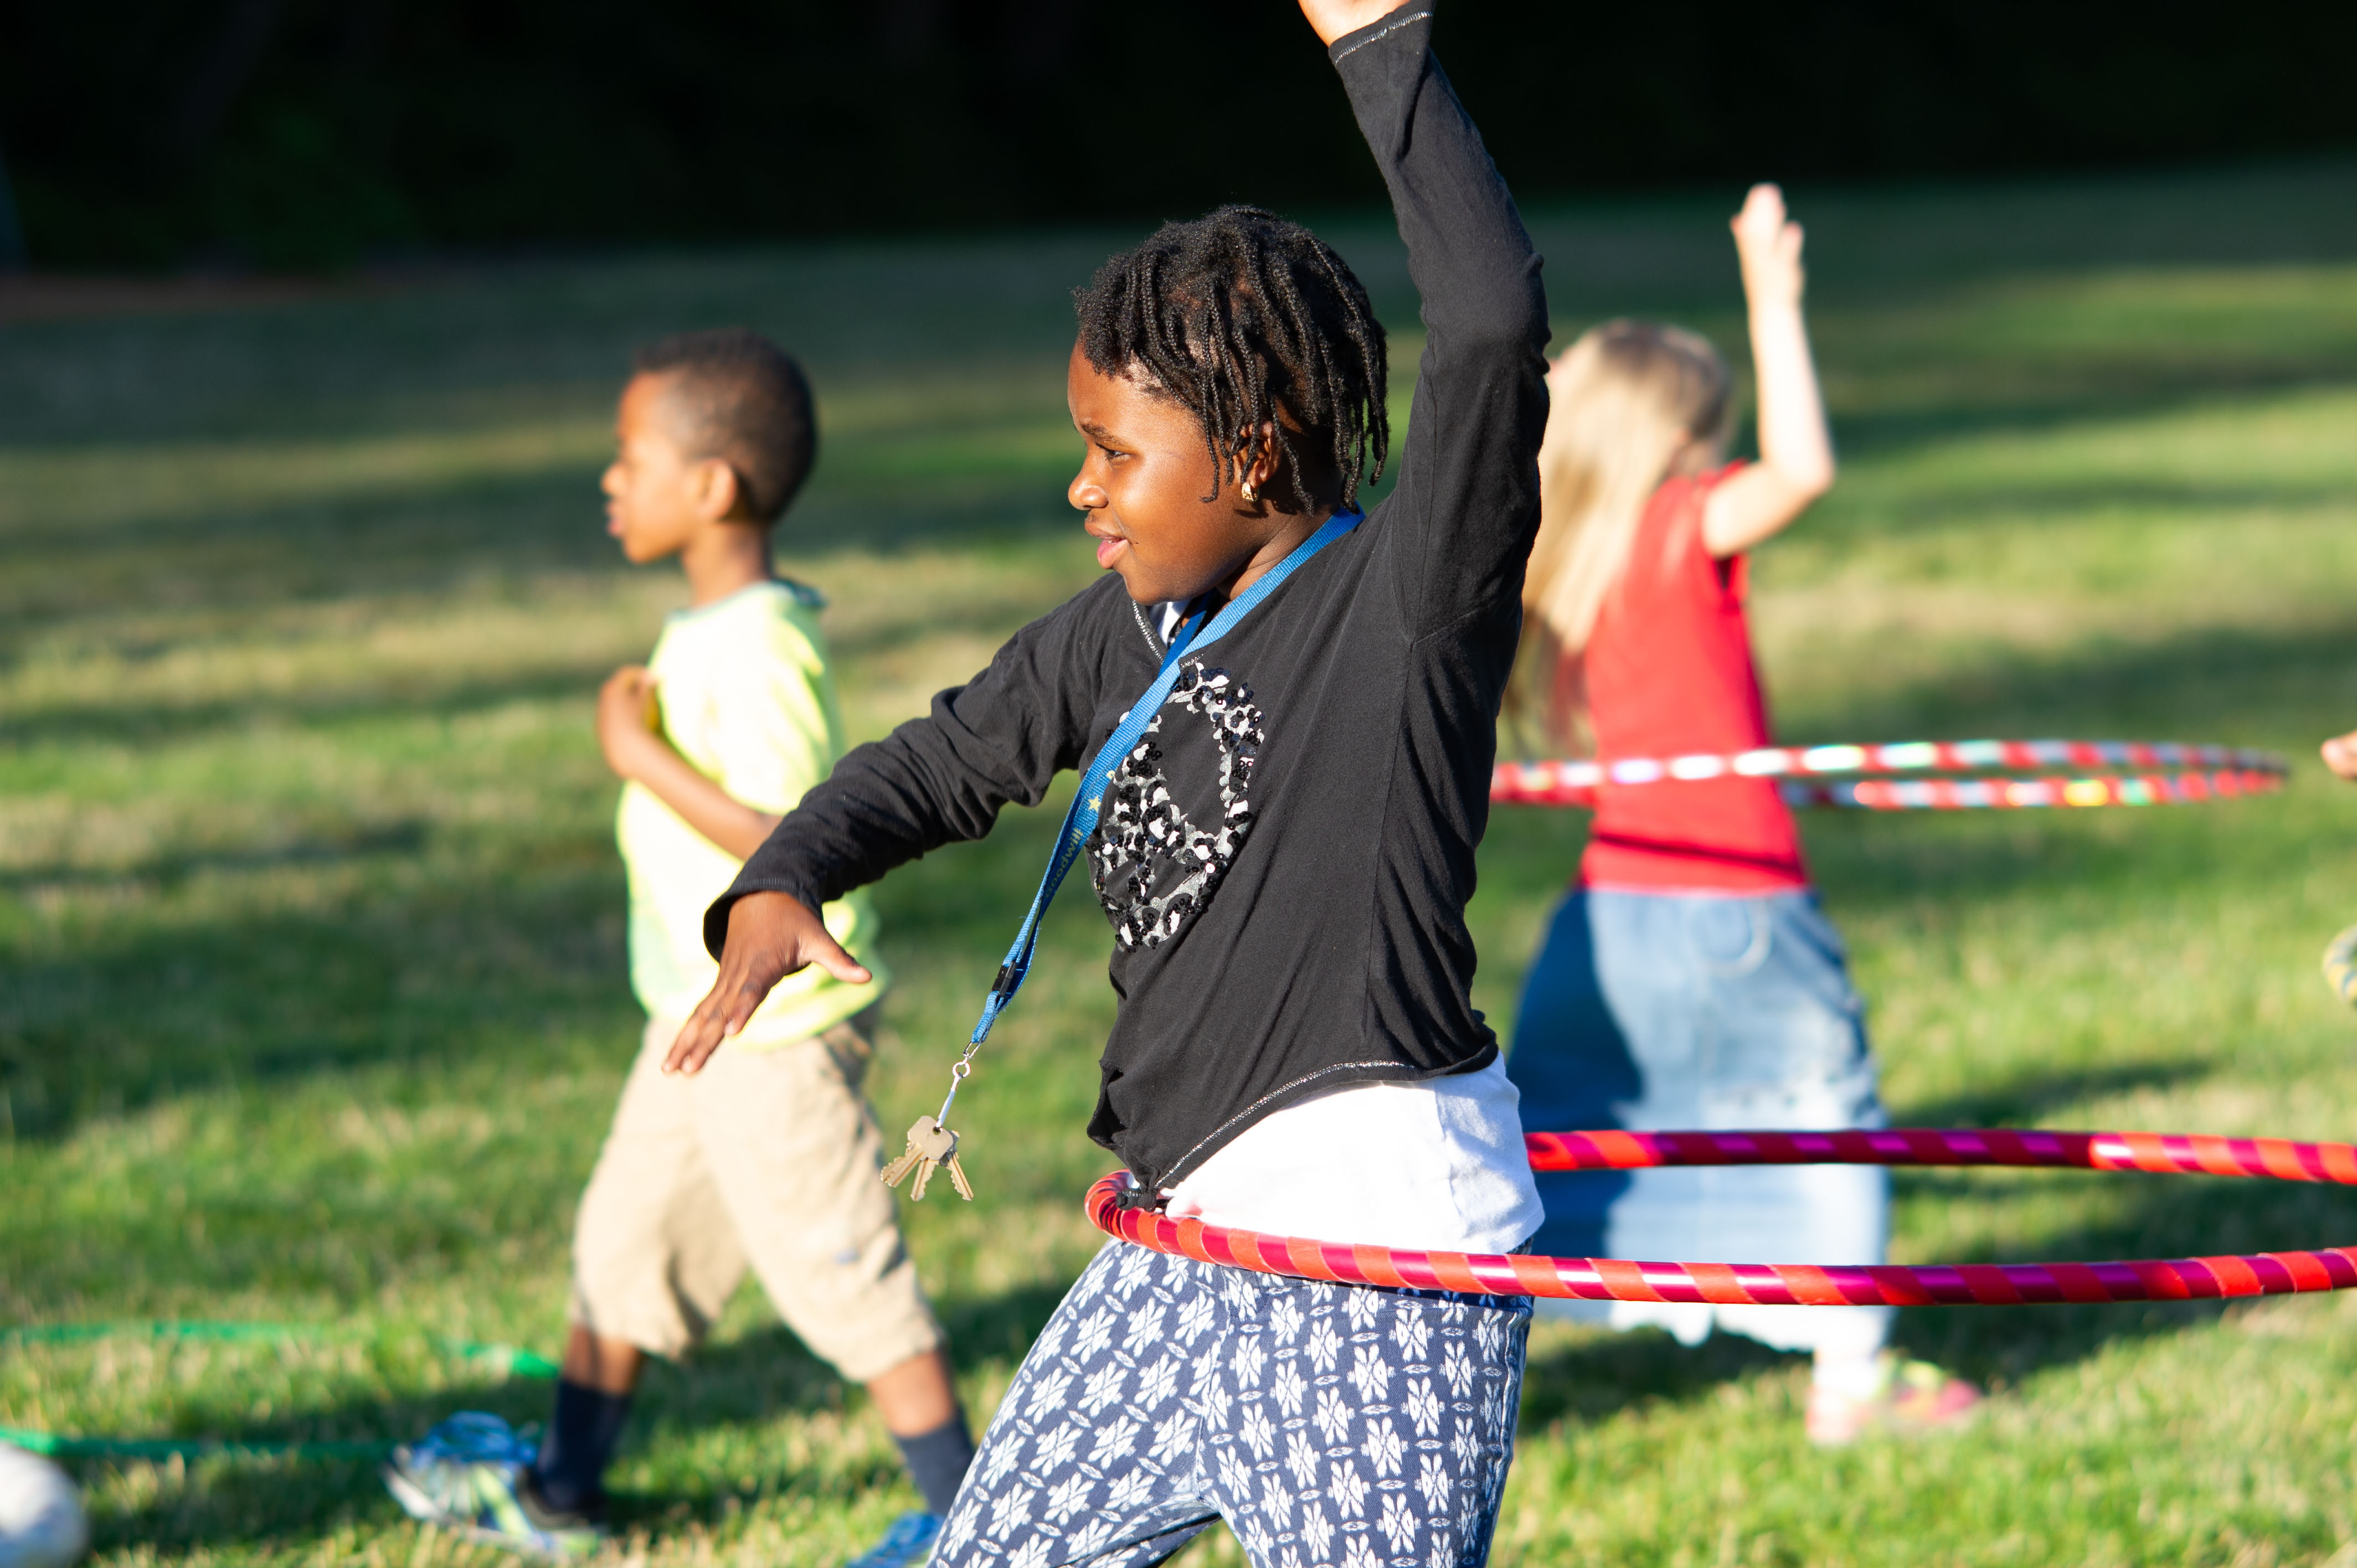 Kids Hula Hooping at South Lynnwood Park